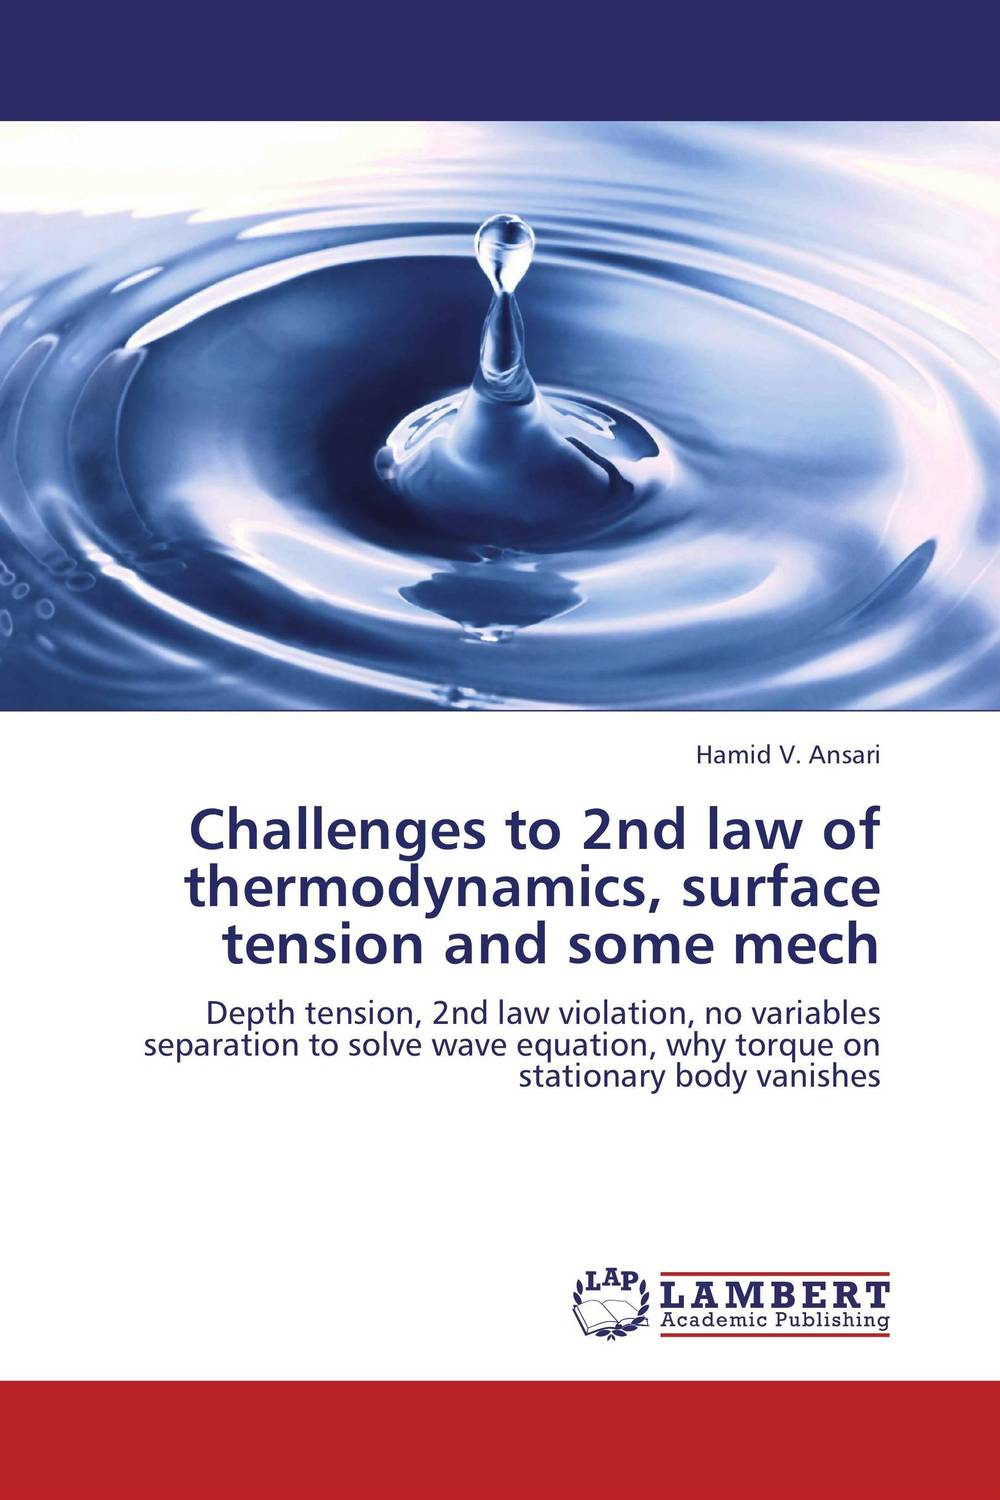 Challenges to 2nd law of thermodynamics, surface tension and some mech economizer forces heat transmission from liquid to vapour effectively and keep pressure drop down to a reasonable level